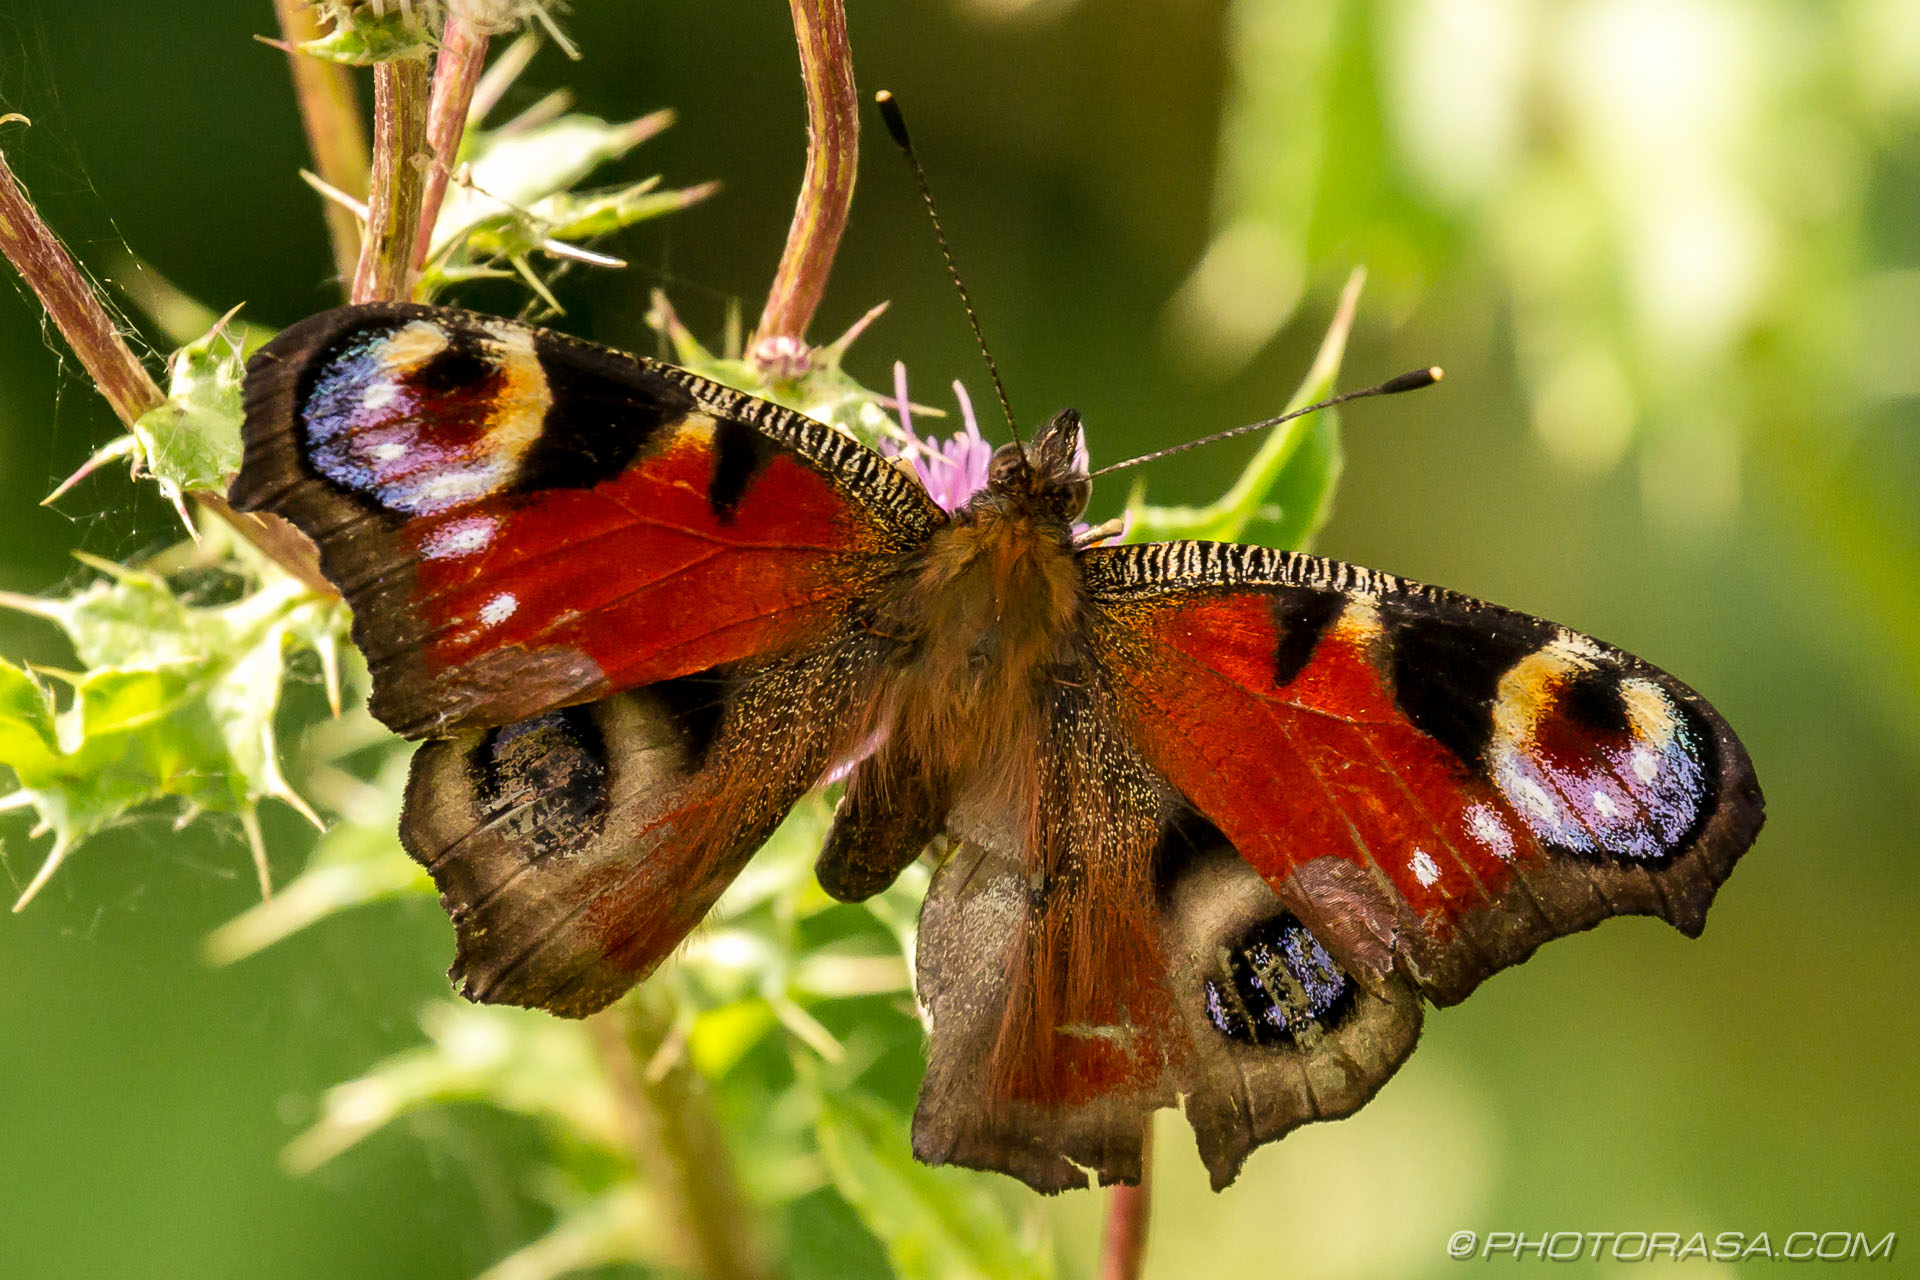 http://photorasa.com/peacock-butterfly/female-peacock-butterfly/